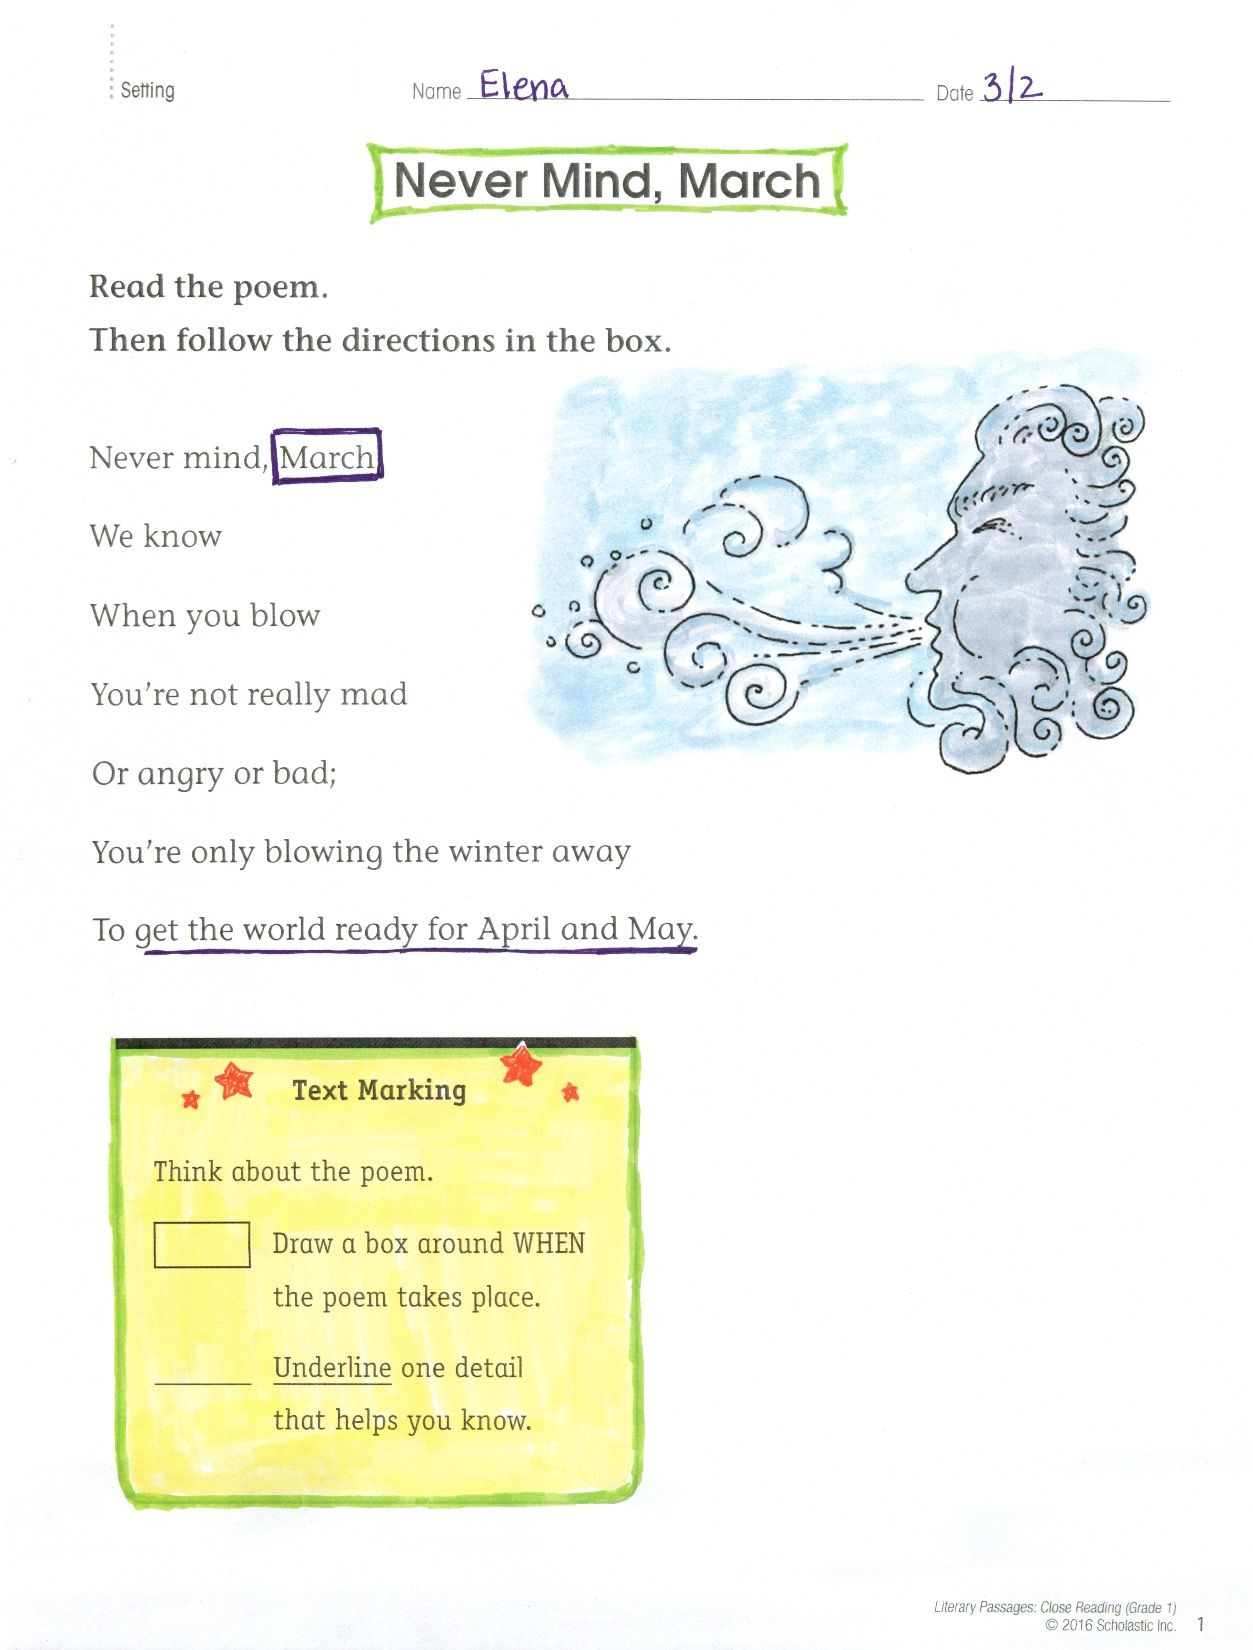 After Reading This Poem About March Winds Children Identify Text Elements And Answer